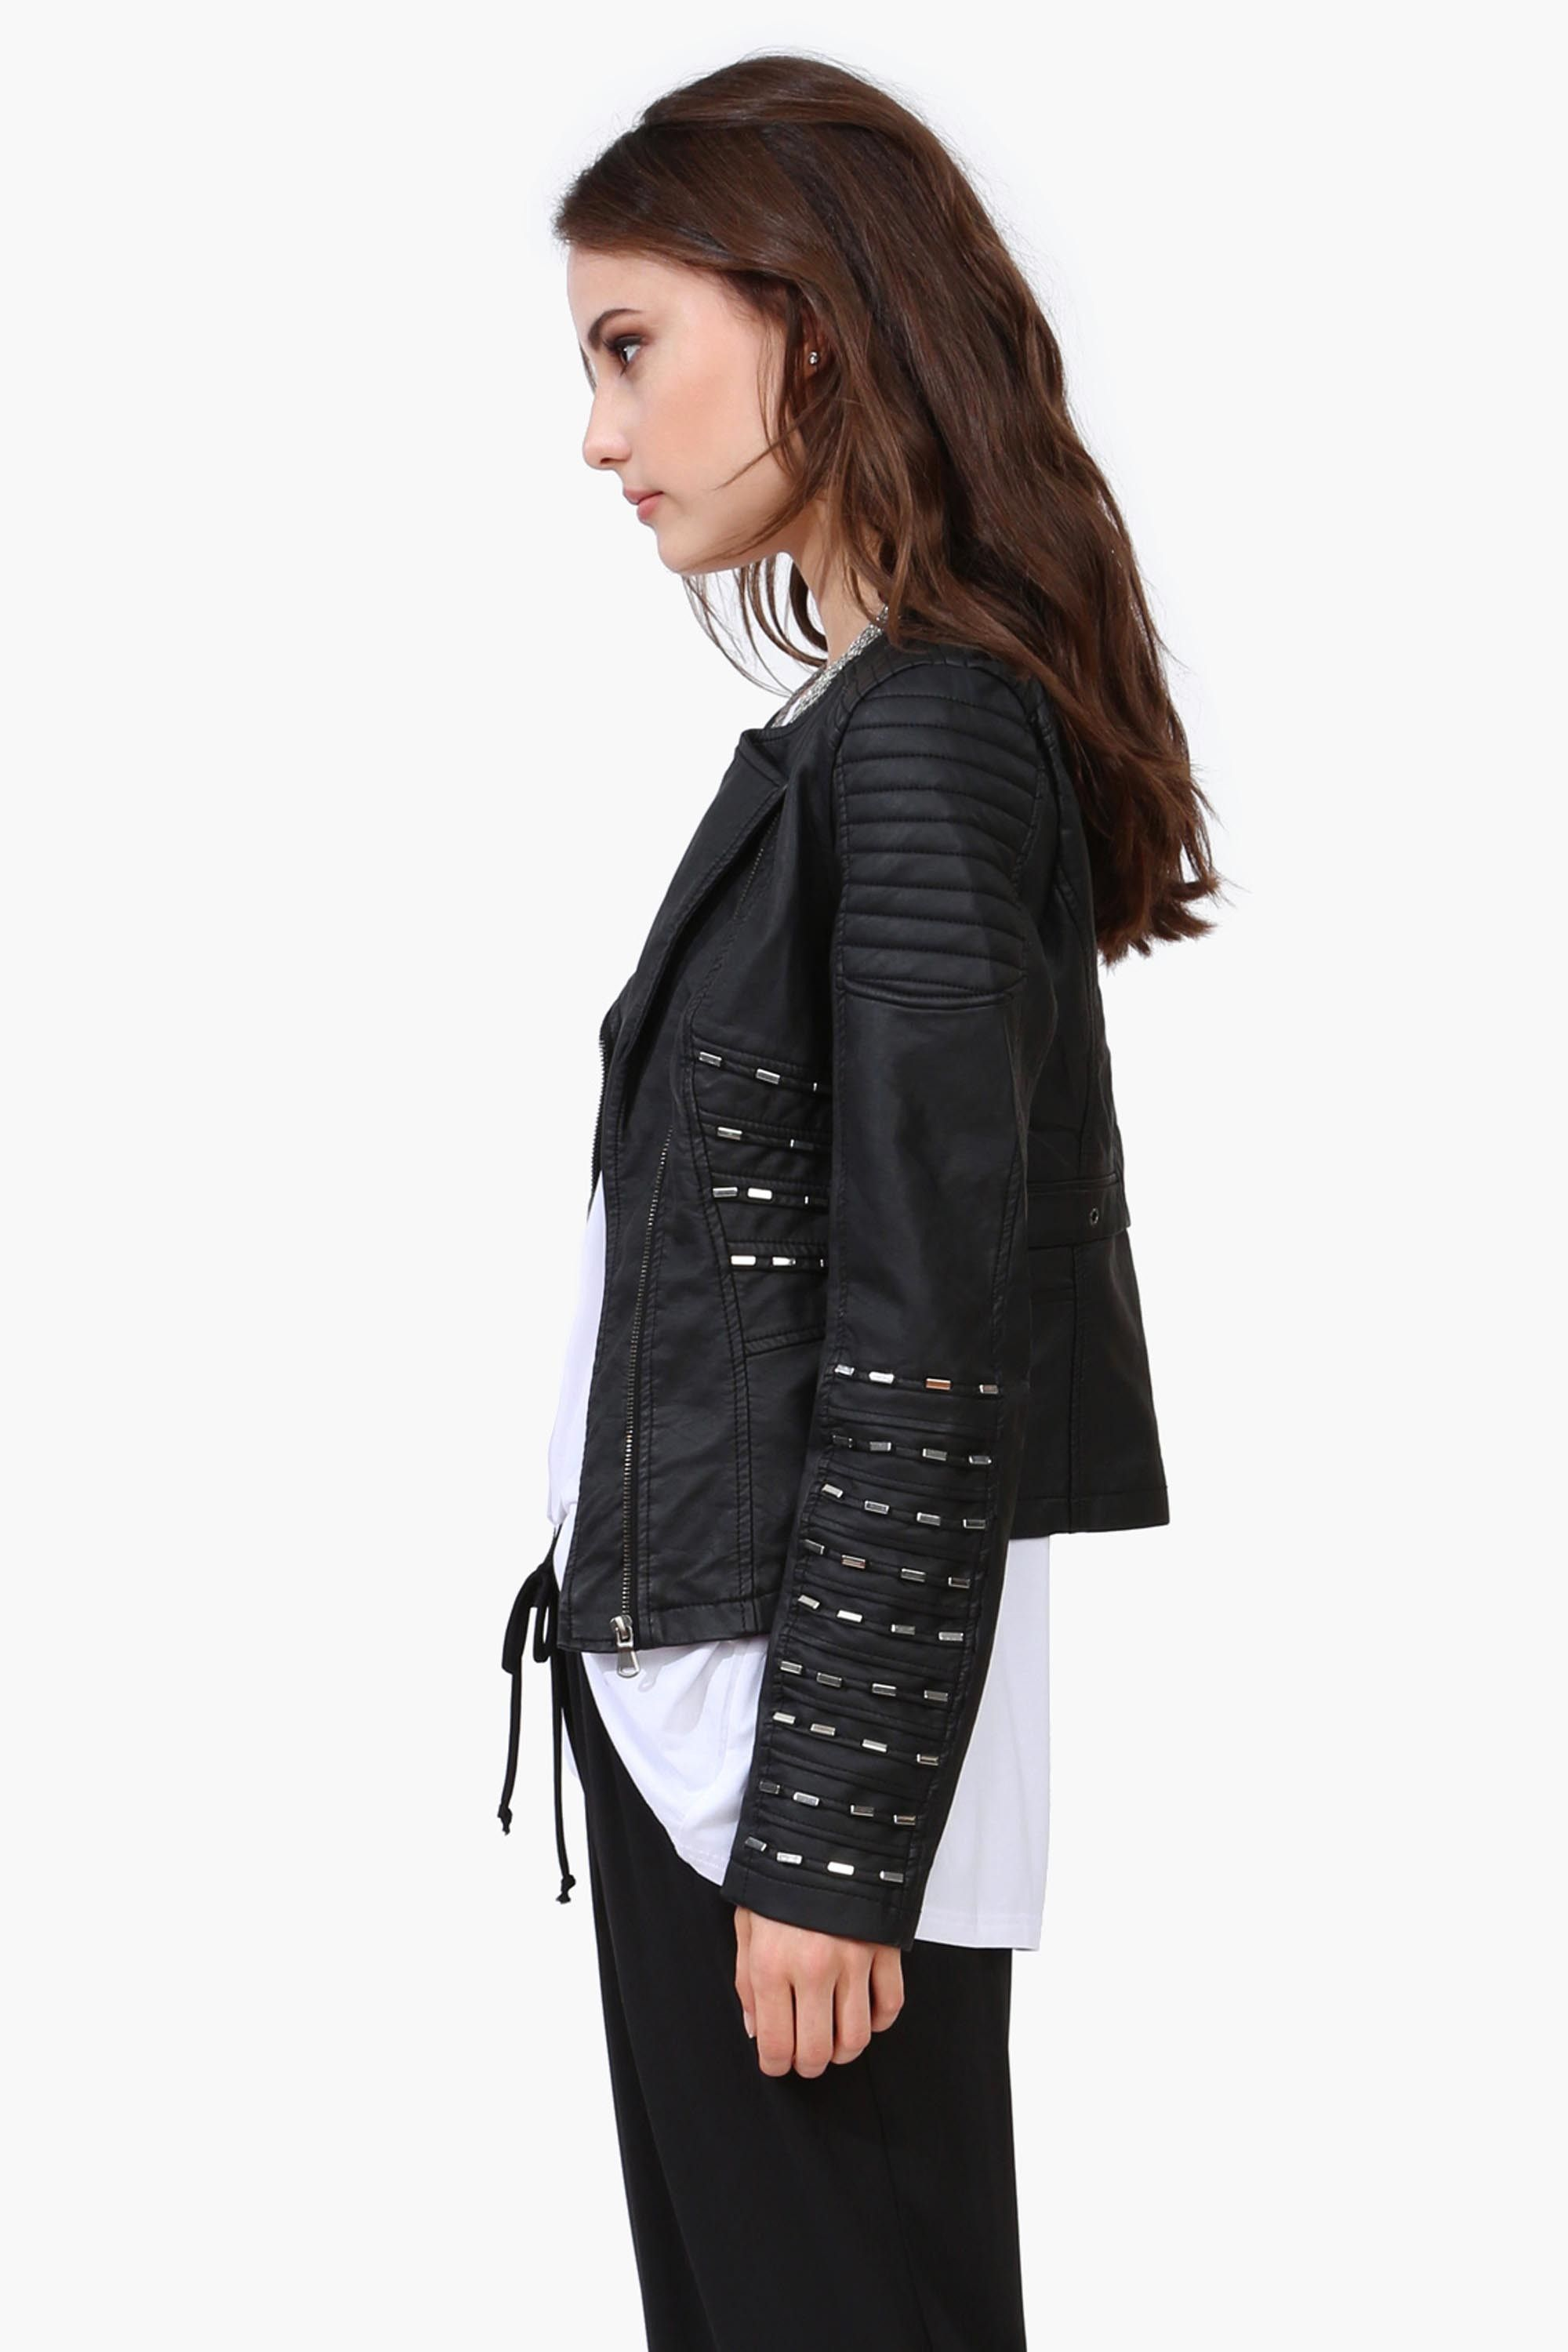 Pin by Natusya on It's my style (With images) Jackets